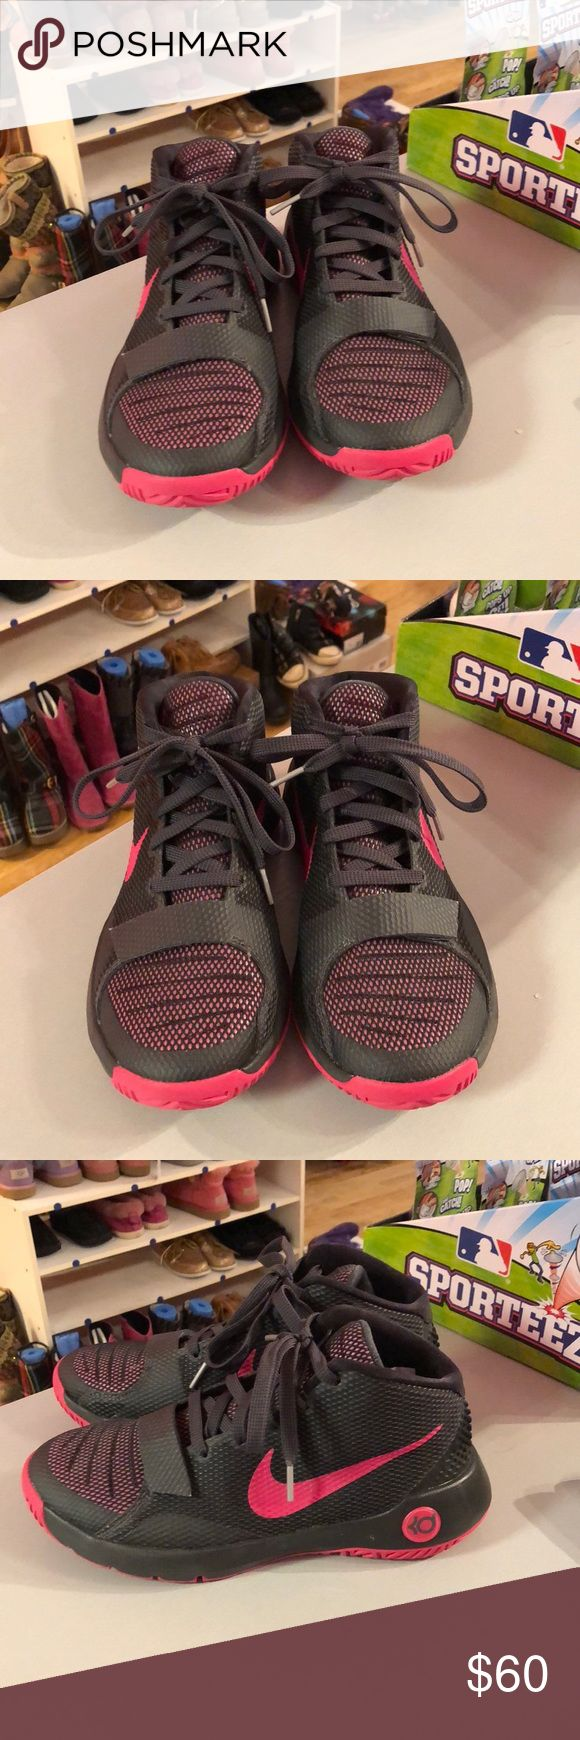 Nike 6 grey/pink Kevin Durant basketball shoes Nike 6 grey/pink Kevin Durant basketball shoes. These shoes have a grey netted look with pink details. There is also a Velcro grey strap at the bottom of the laces. They are gently used, but in great condition. Consigned to my boutique, no trades. Nike Shoes Athletic Shoes